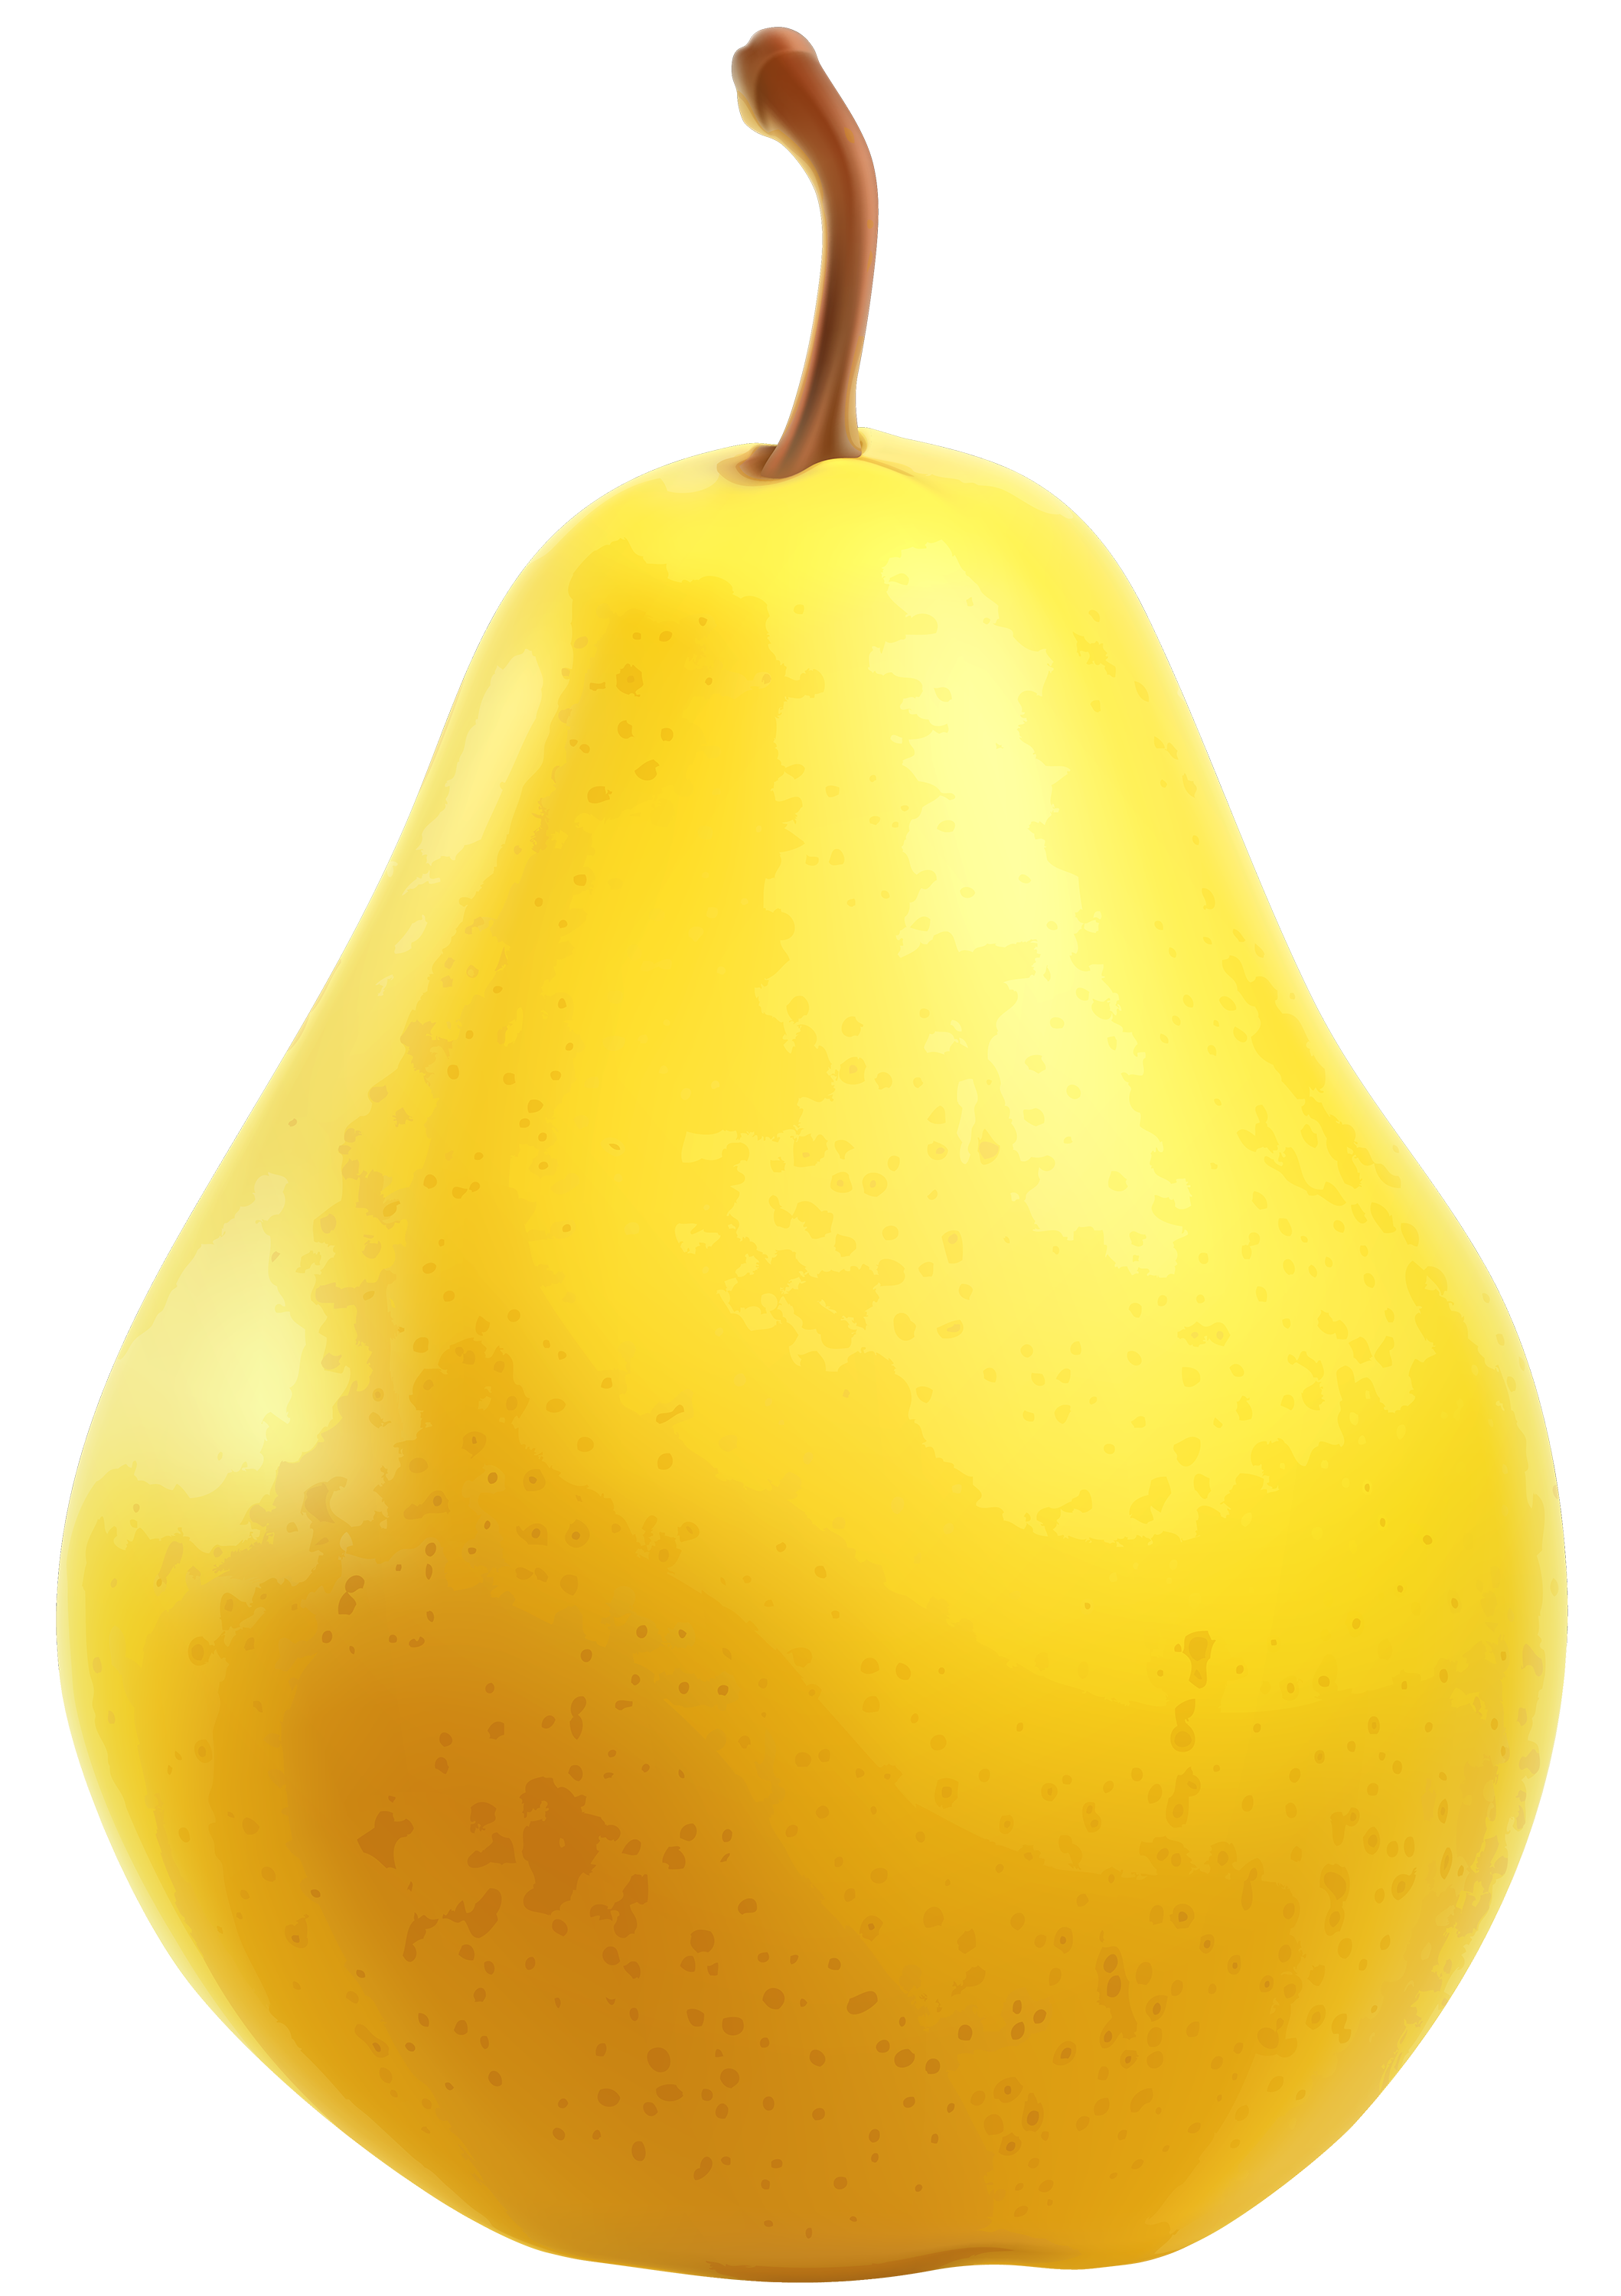 Pear clipart cute. Png letters format yellow